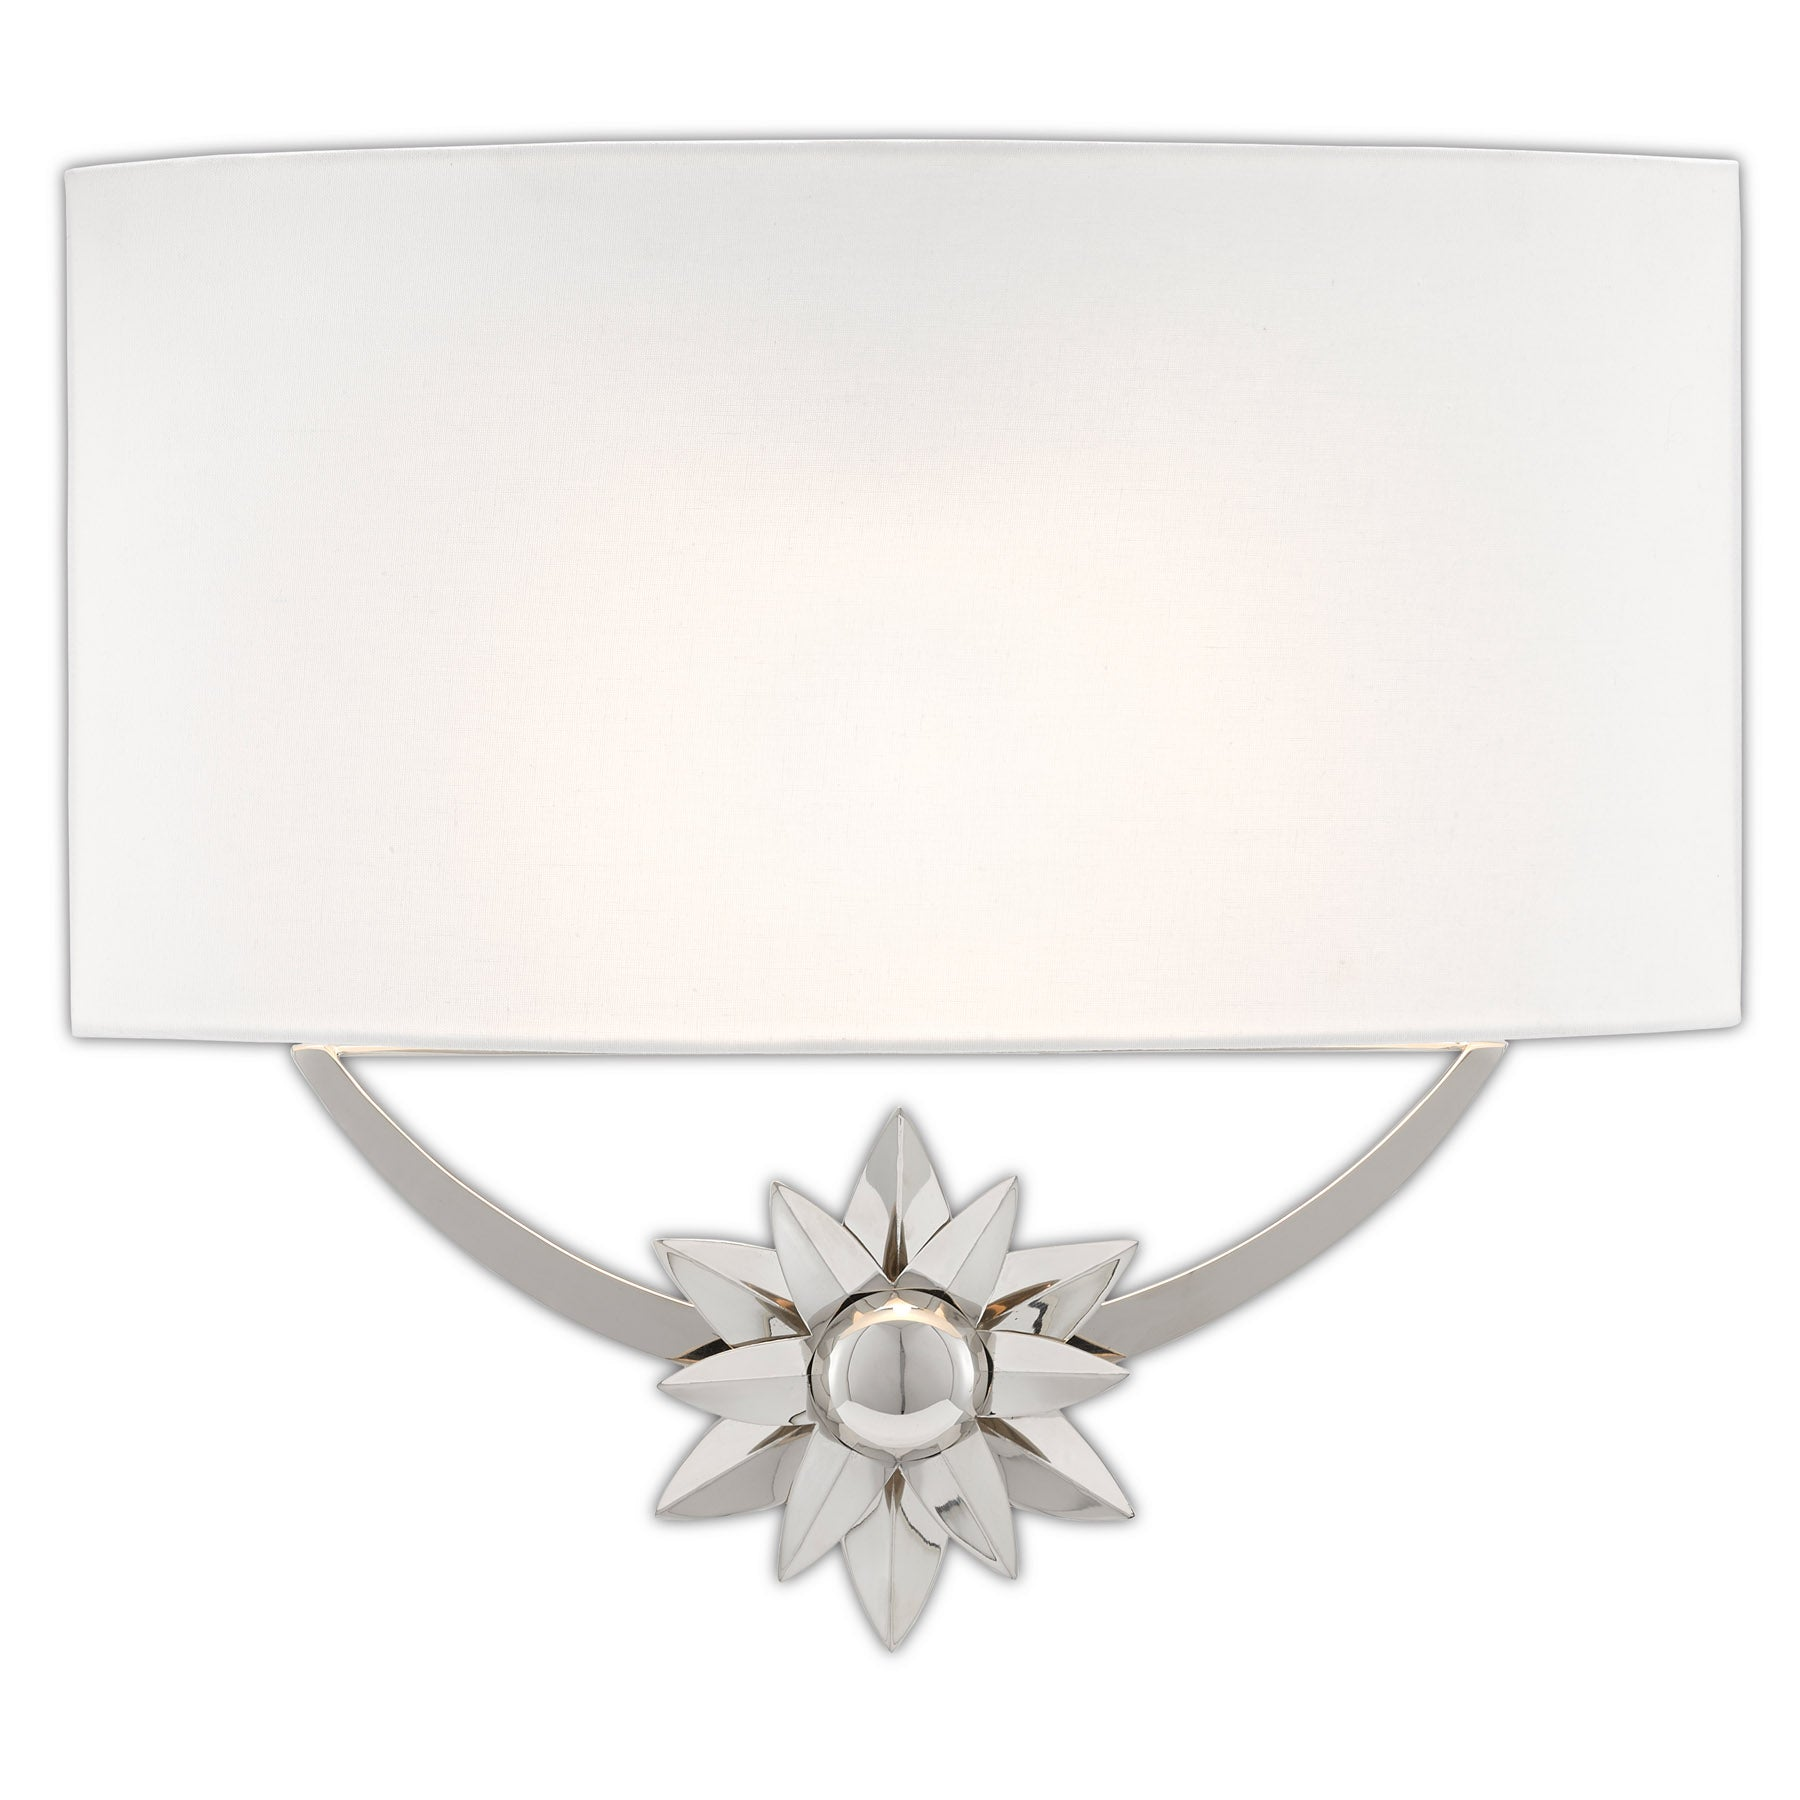 Dayflower Nickel Wall Sconce